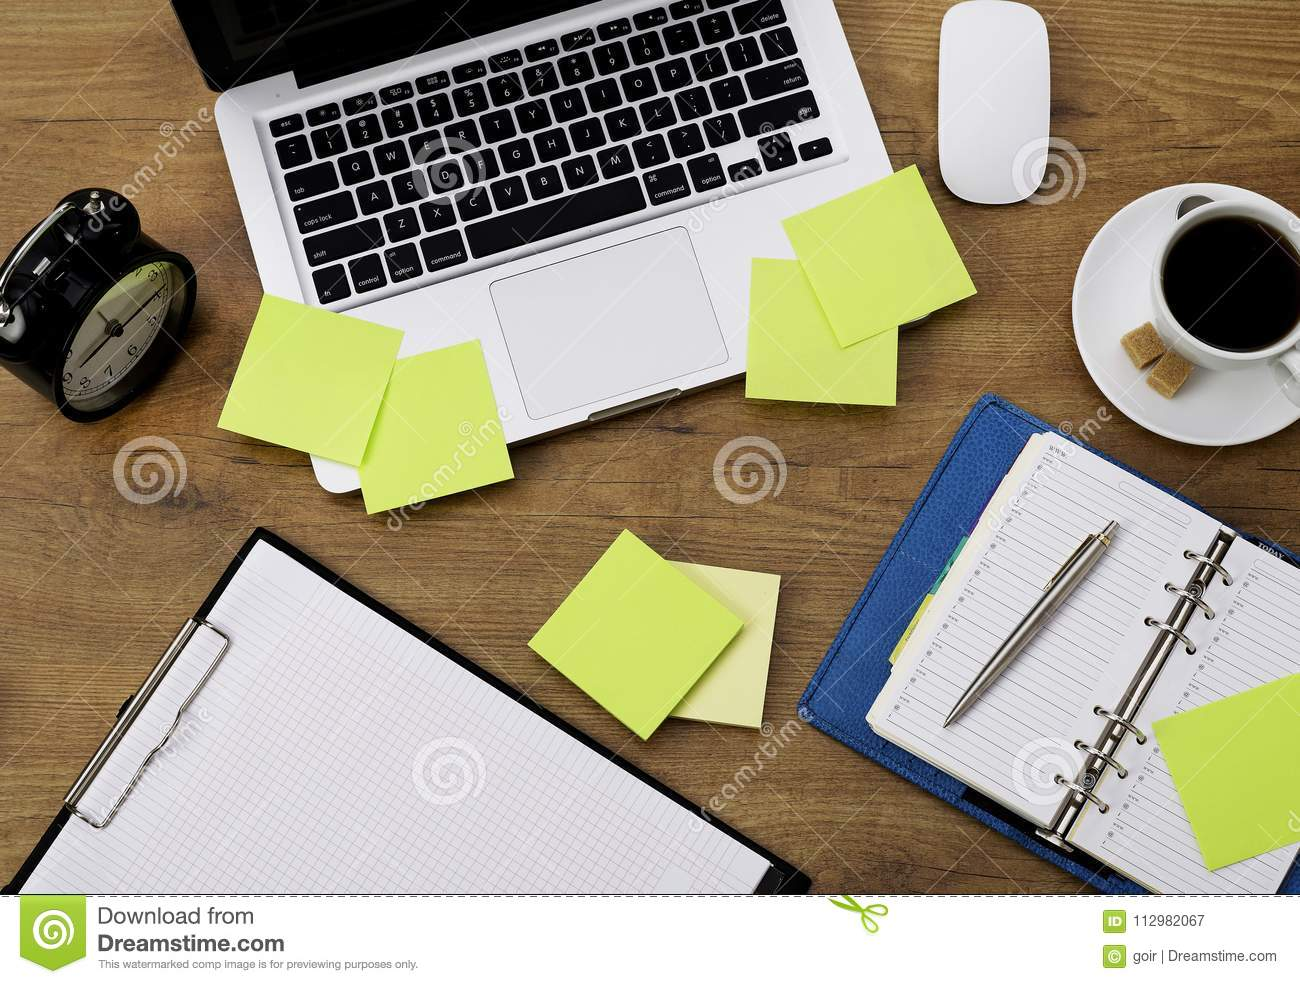 Agenda and office supplies